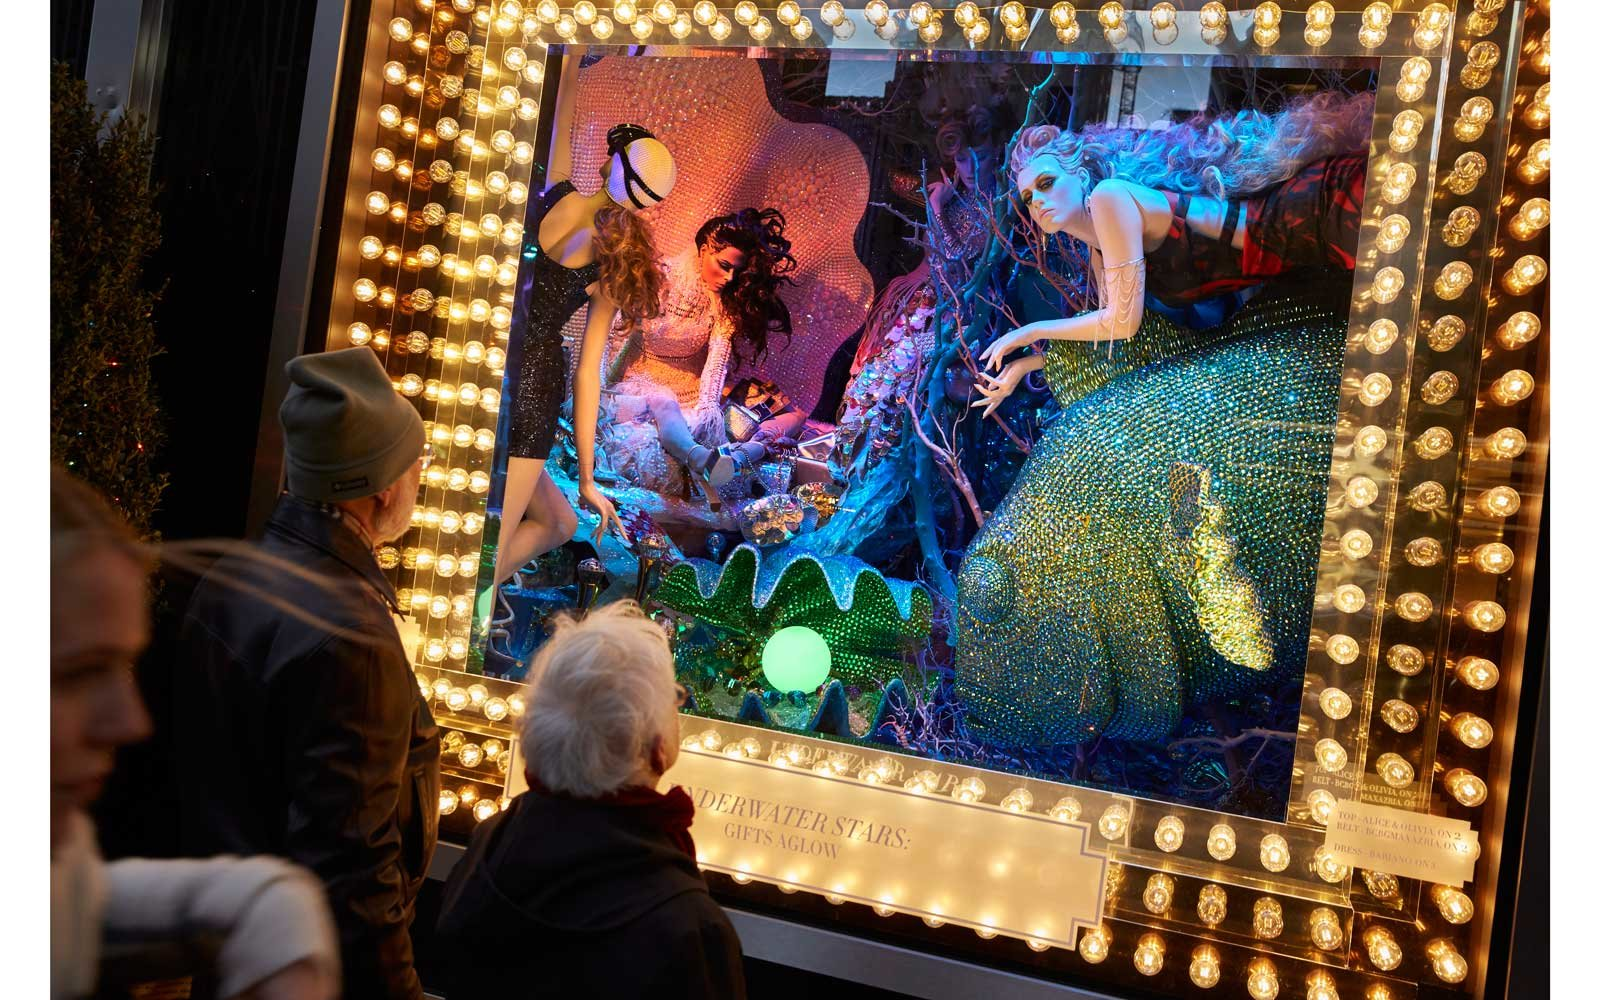 Nyc Christmas Windows 2020 Bloomingdales Nyc Christmas Windows 2020 | Rceqmg.infochristmas.site